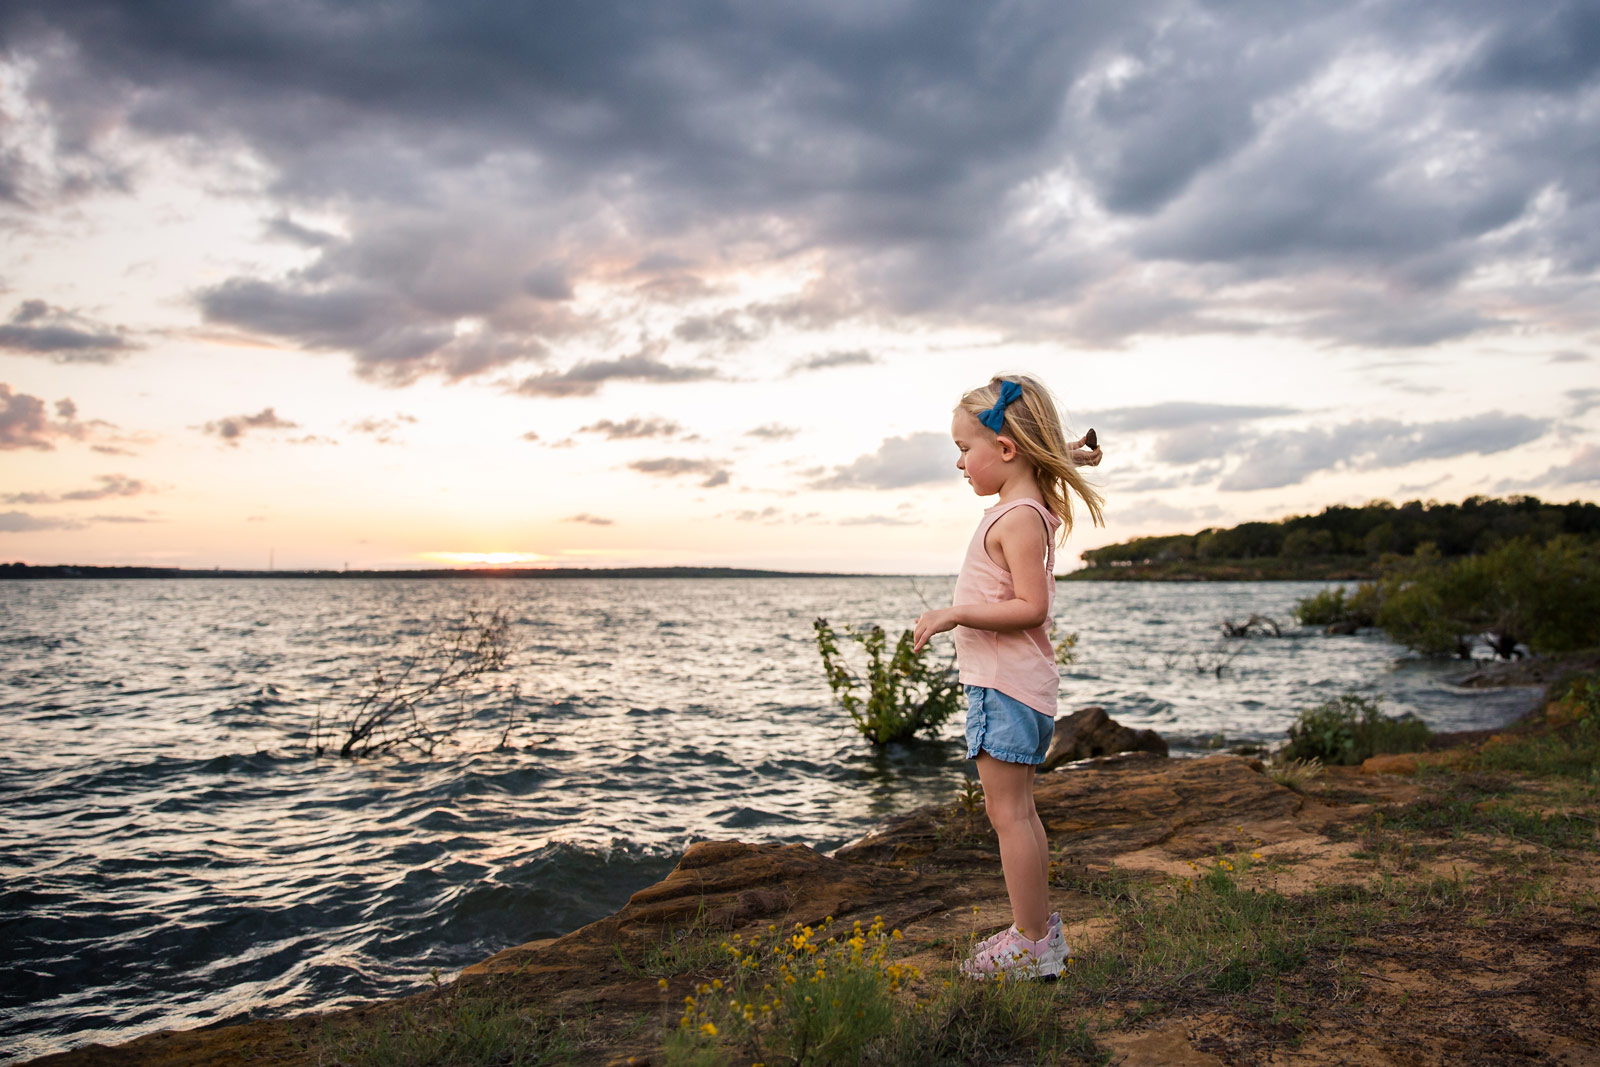 Girl throwing rock in front of properly exposed dramatic sky